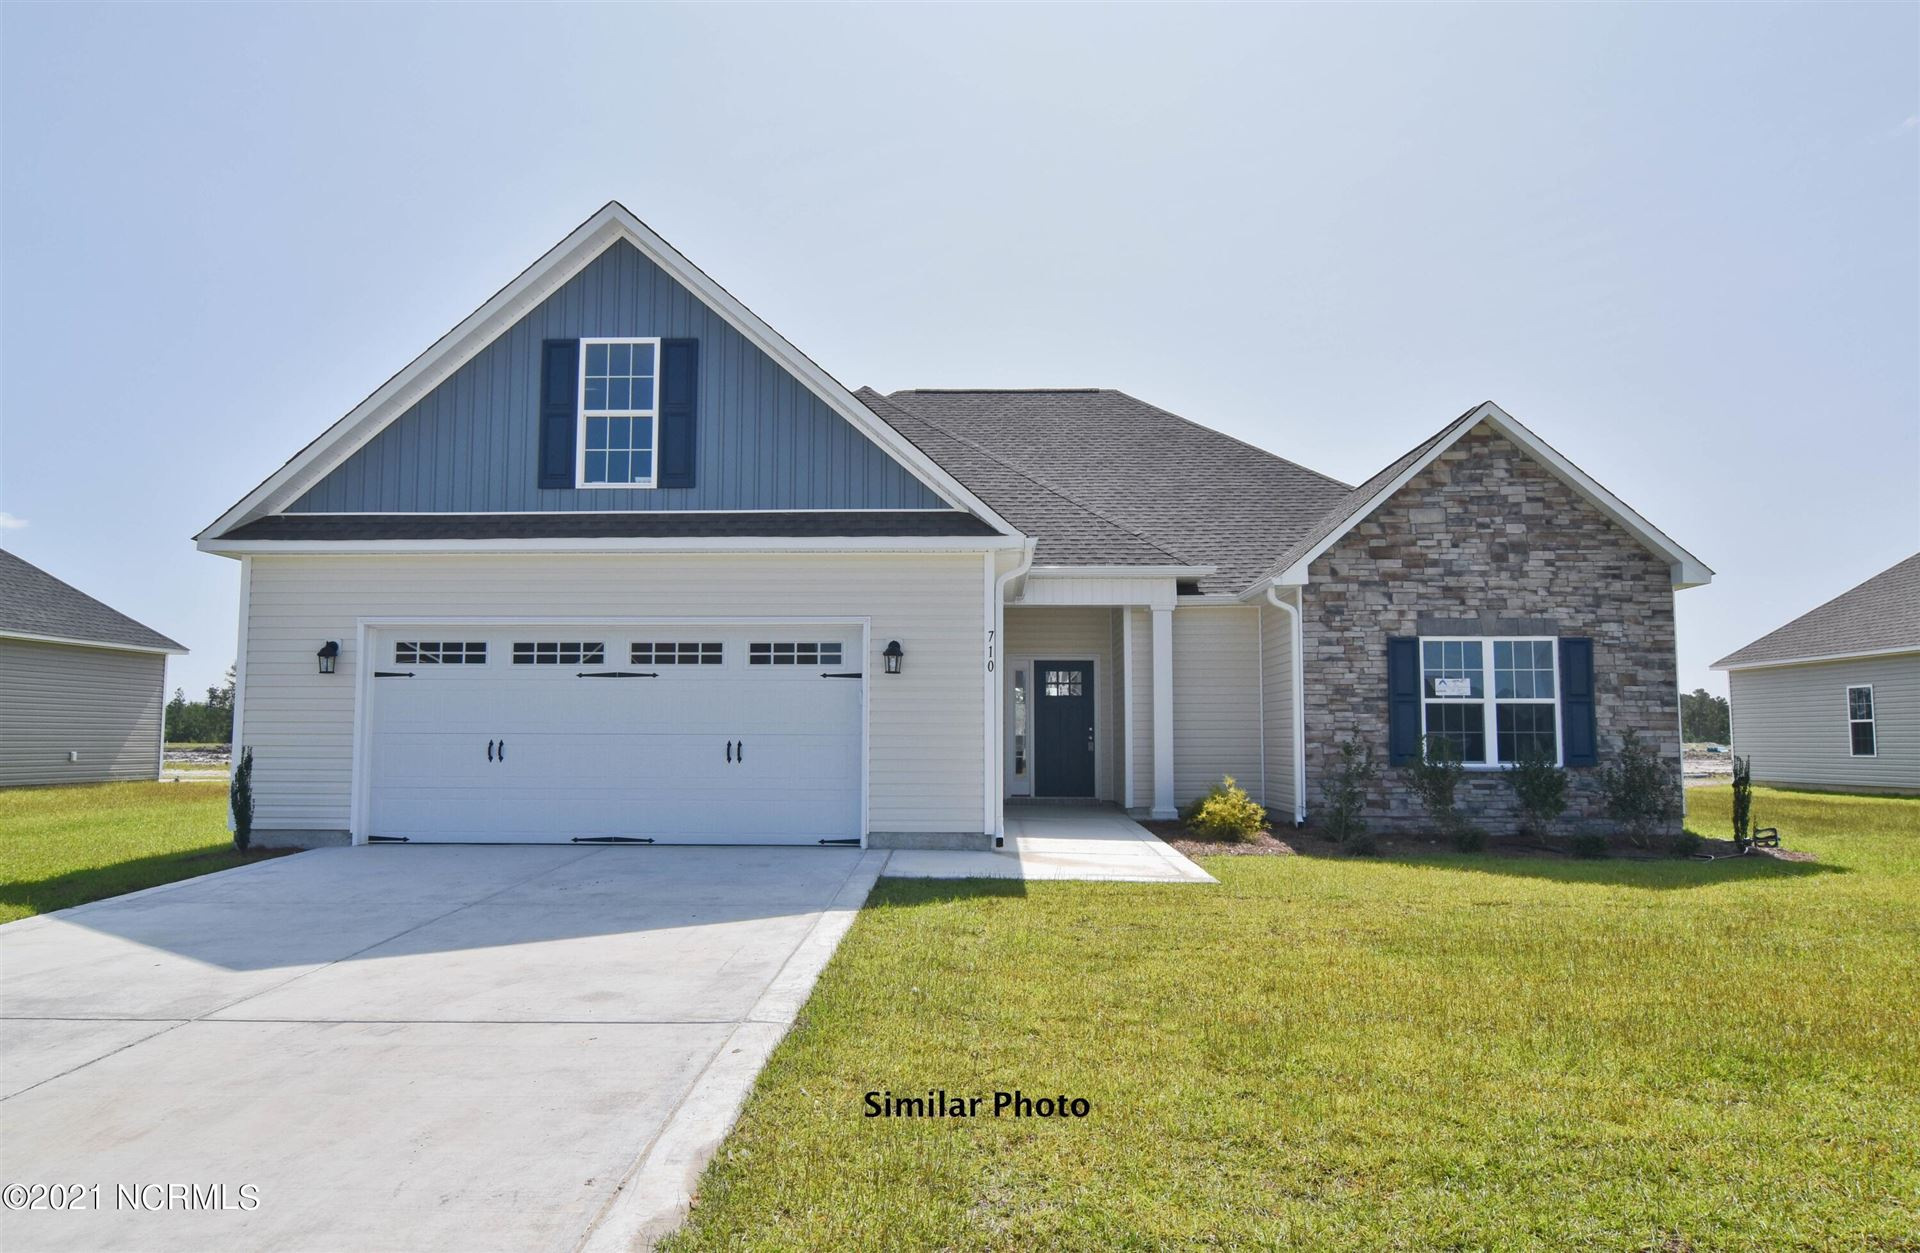 Photo of 412 Water Wagon Trail, Jacksonville, NC 28546 (MLS # 100289610)